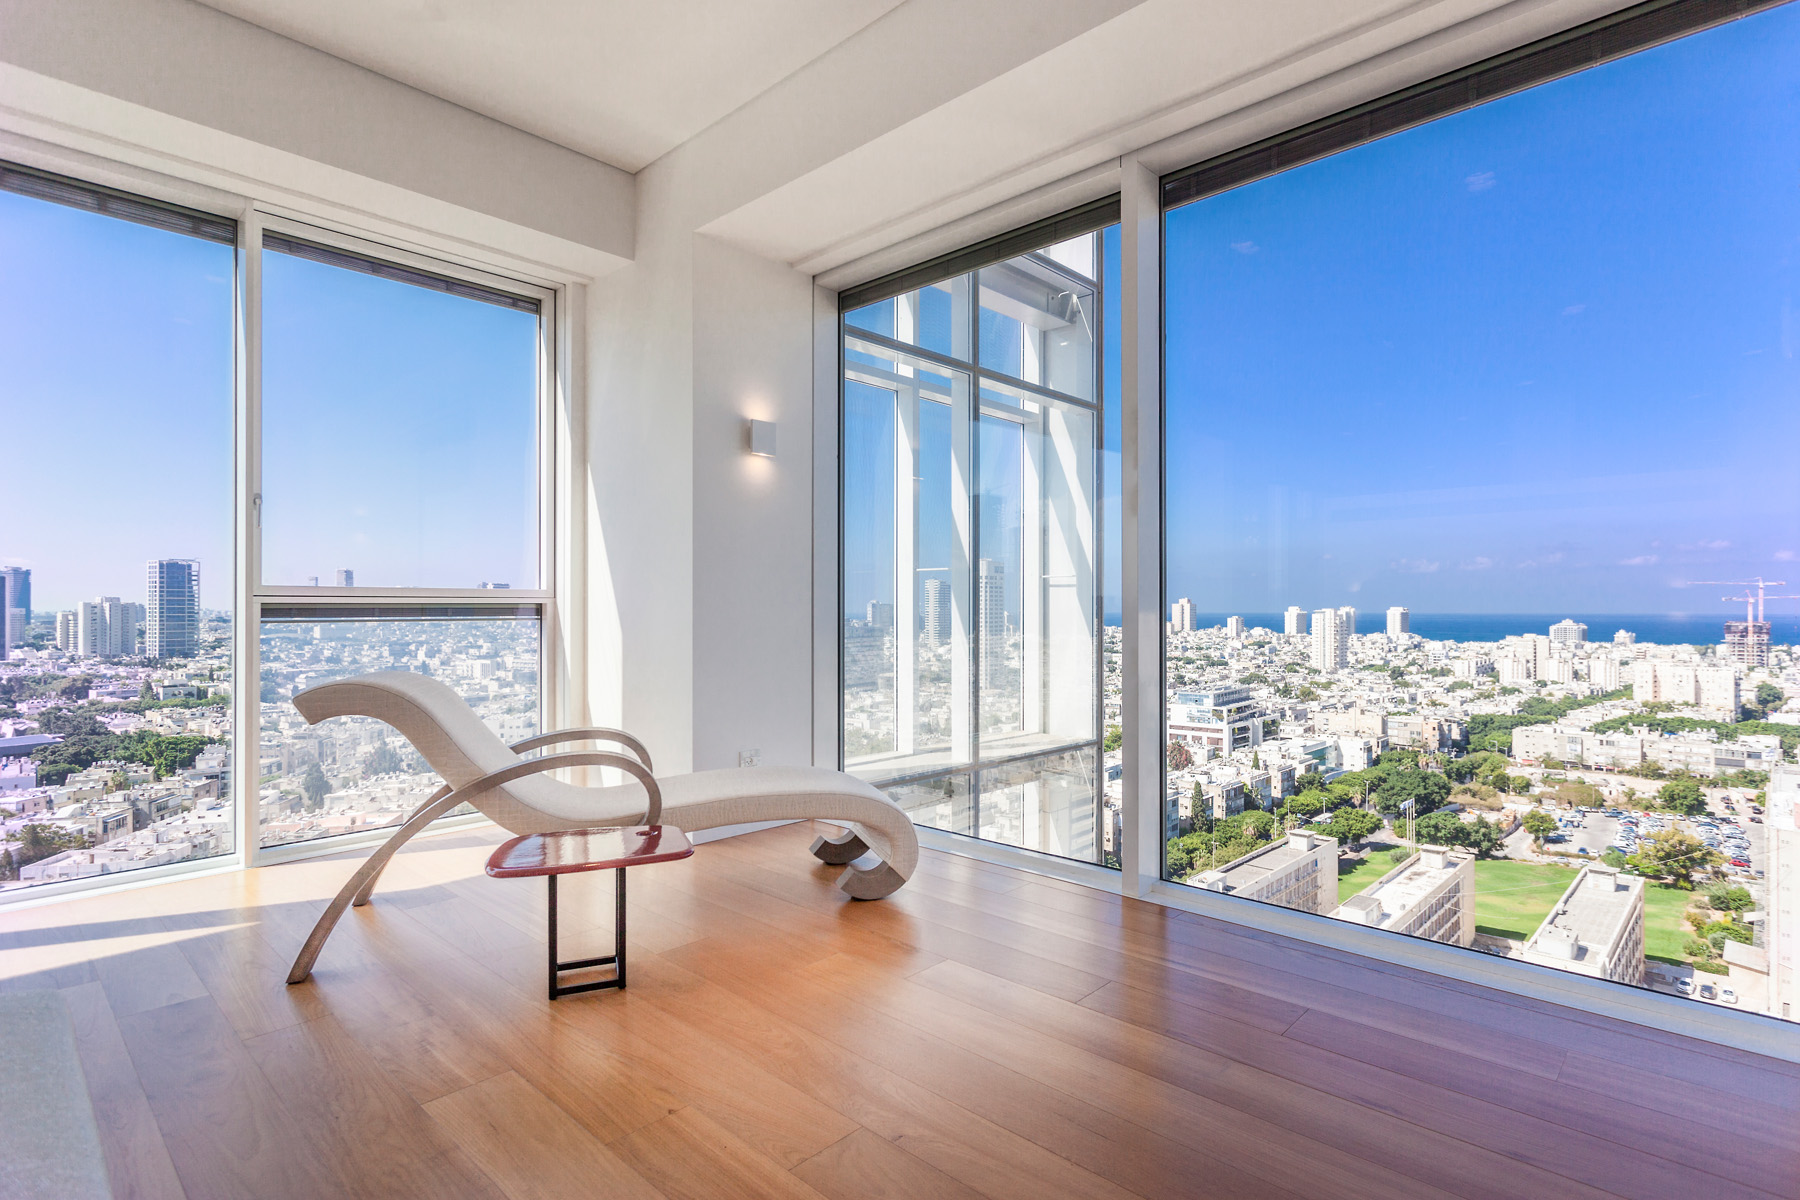 Appartement pour l Vente à Modern Luxury Apartment With Incomparable Views Tel Aviv, Israël